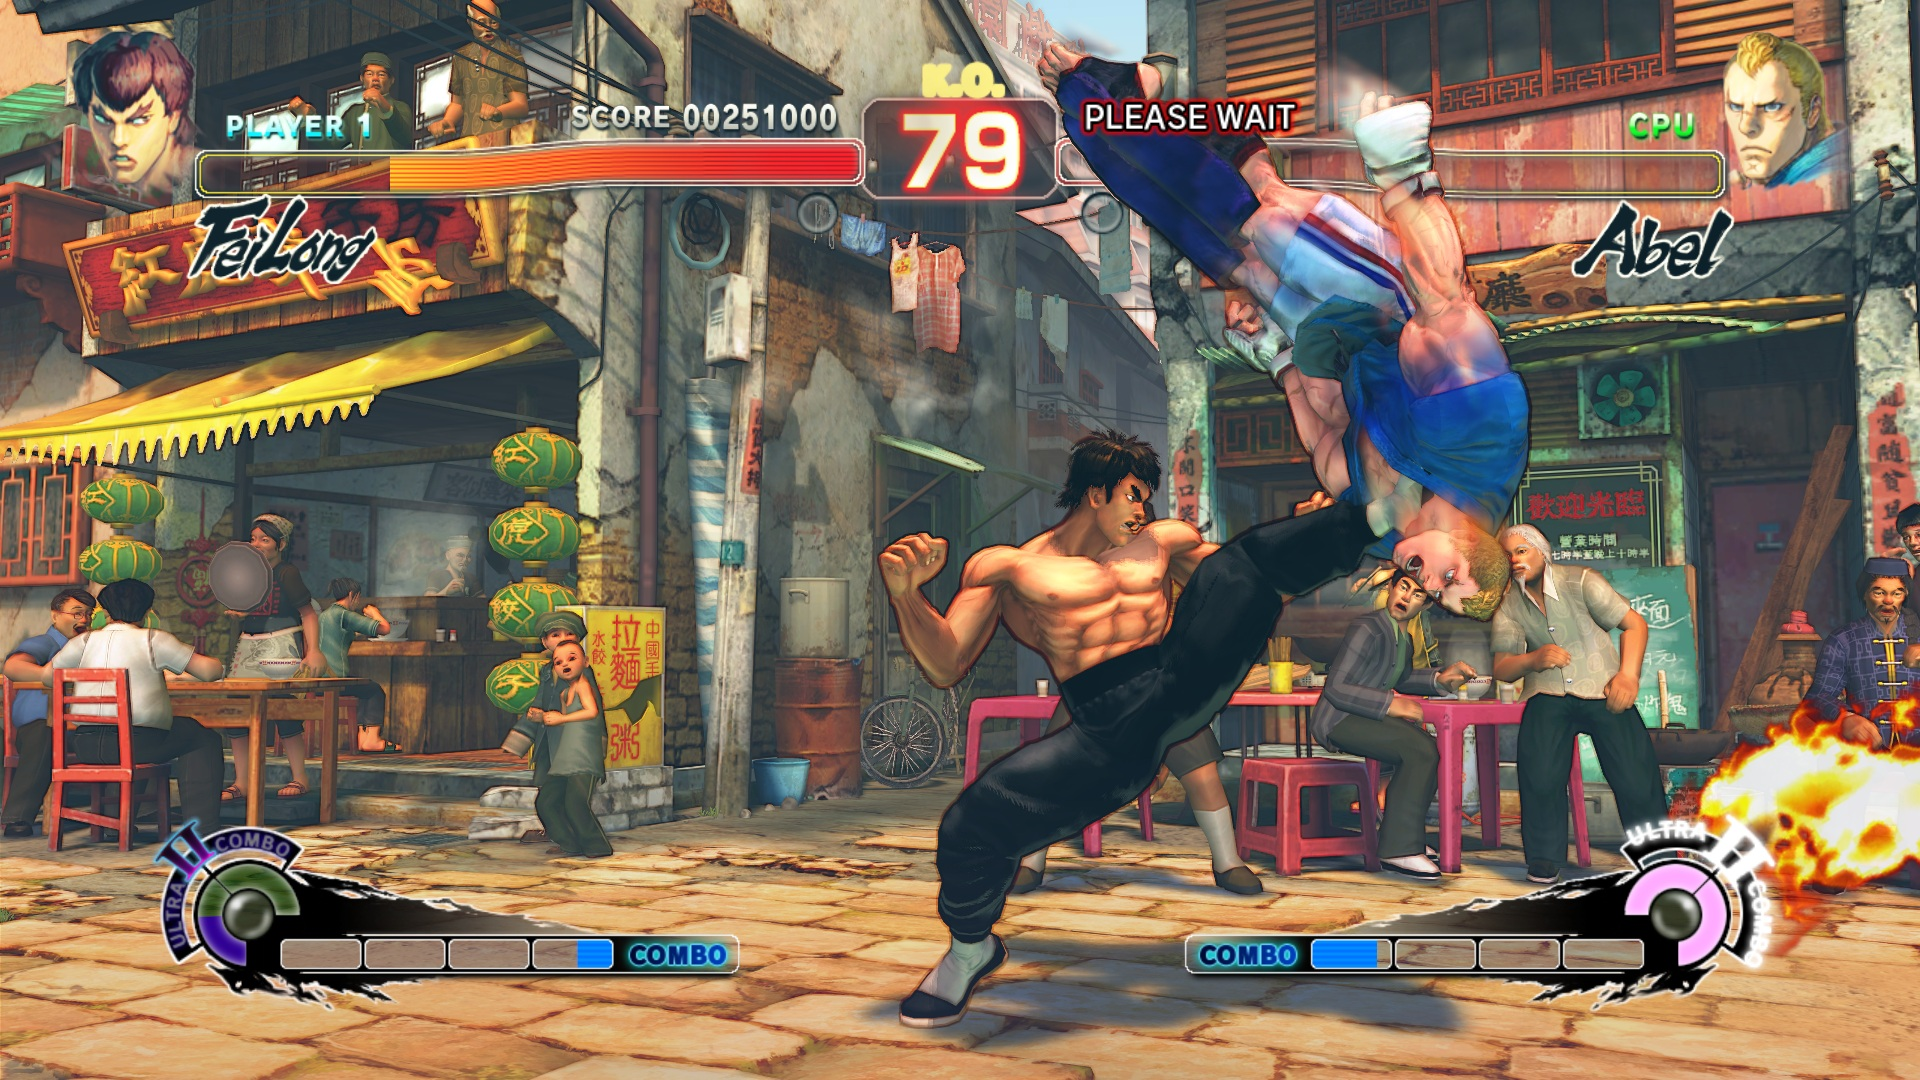 Street fighter iv pc games download